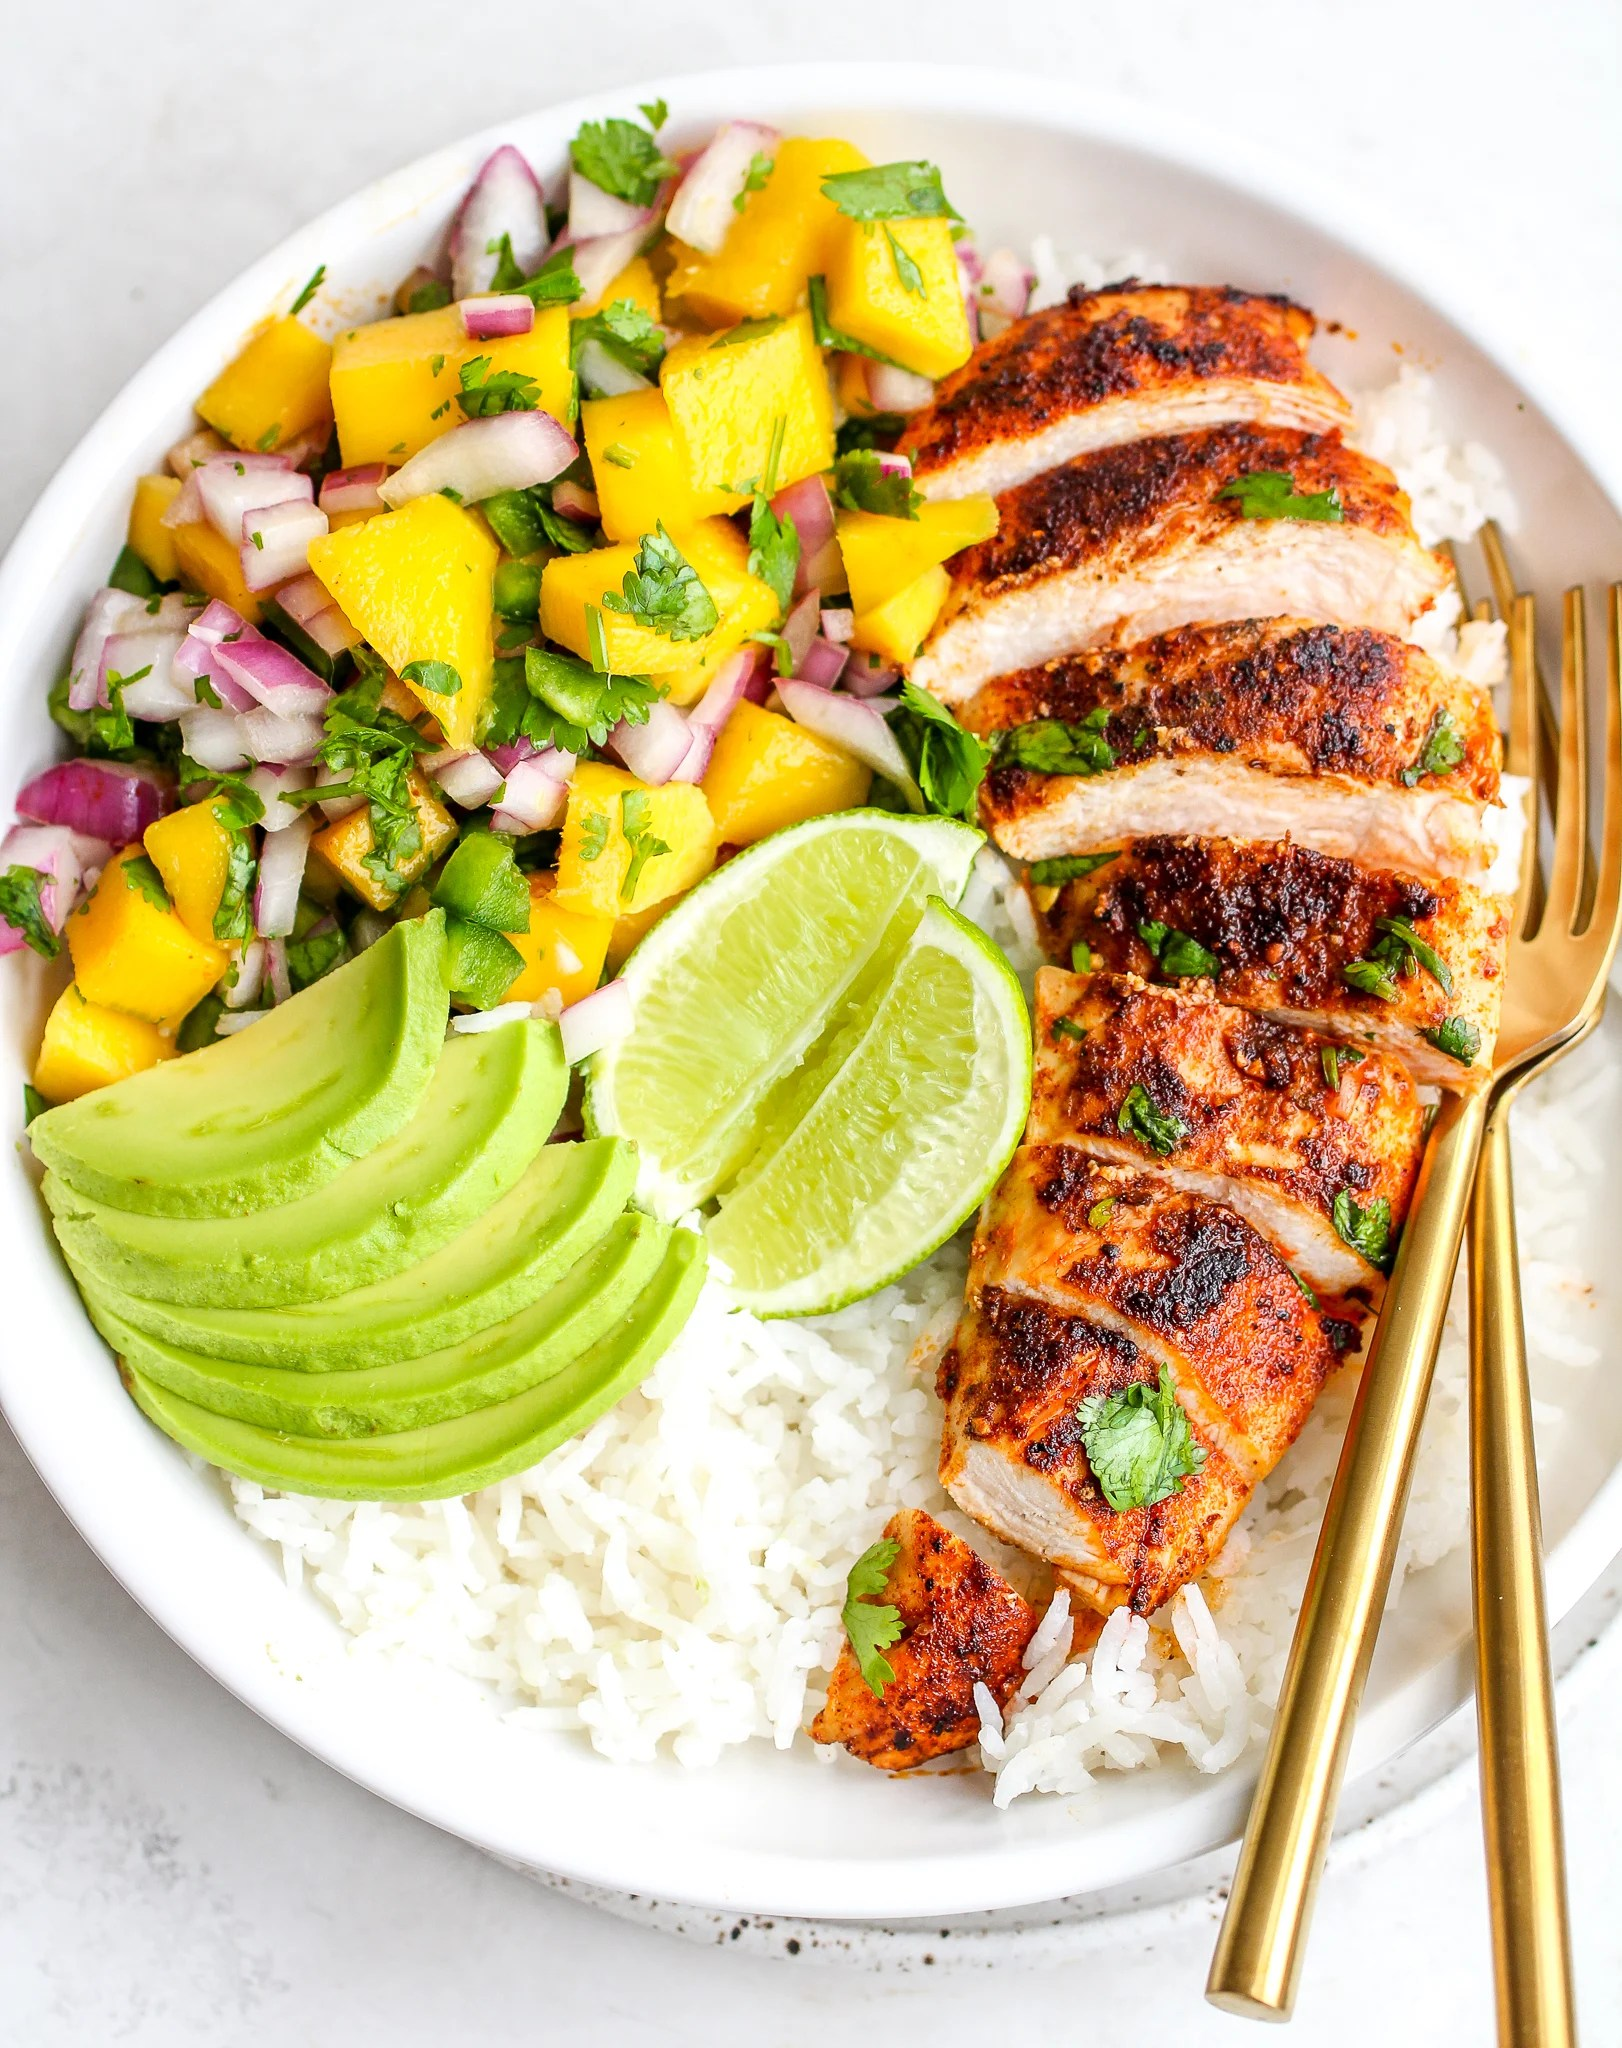 sliced spiced chicken breast over cooked white rice with fresh mango salsa on the side - as well as sliced avocado and lime wedges